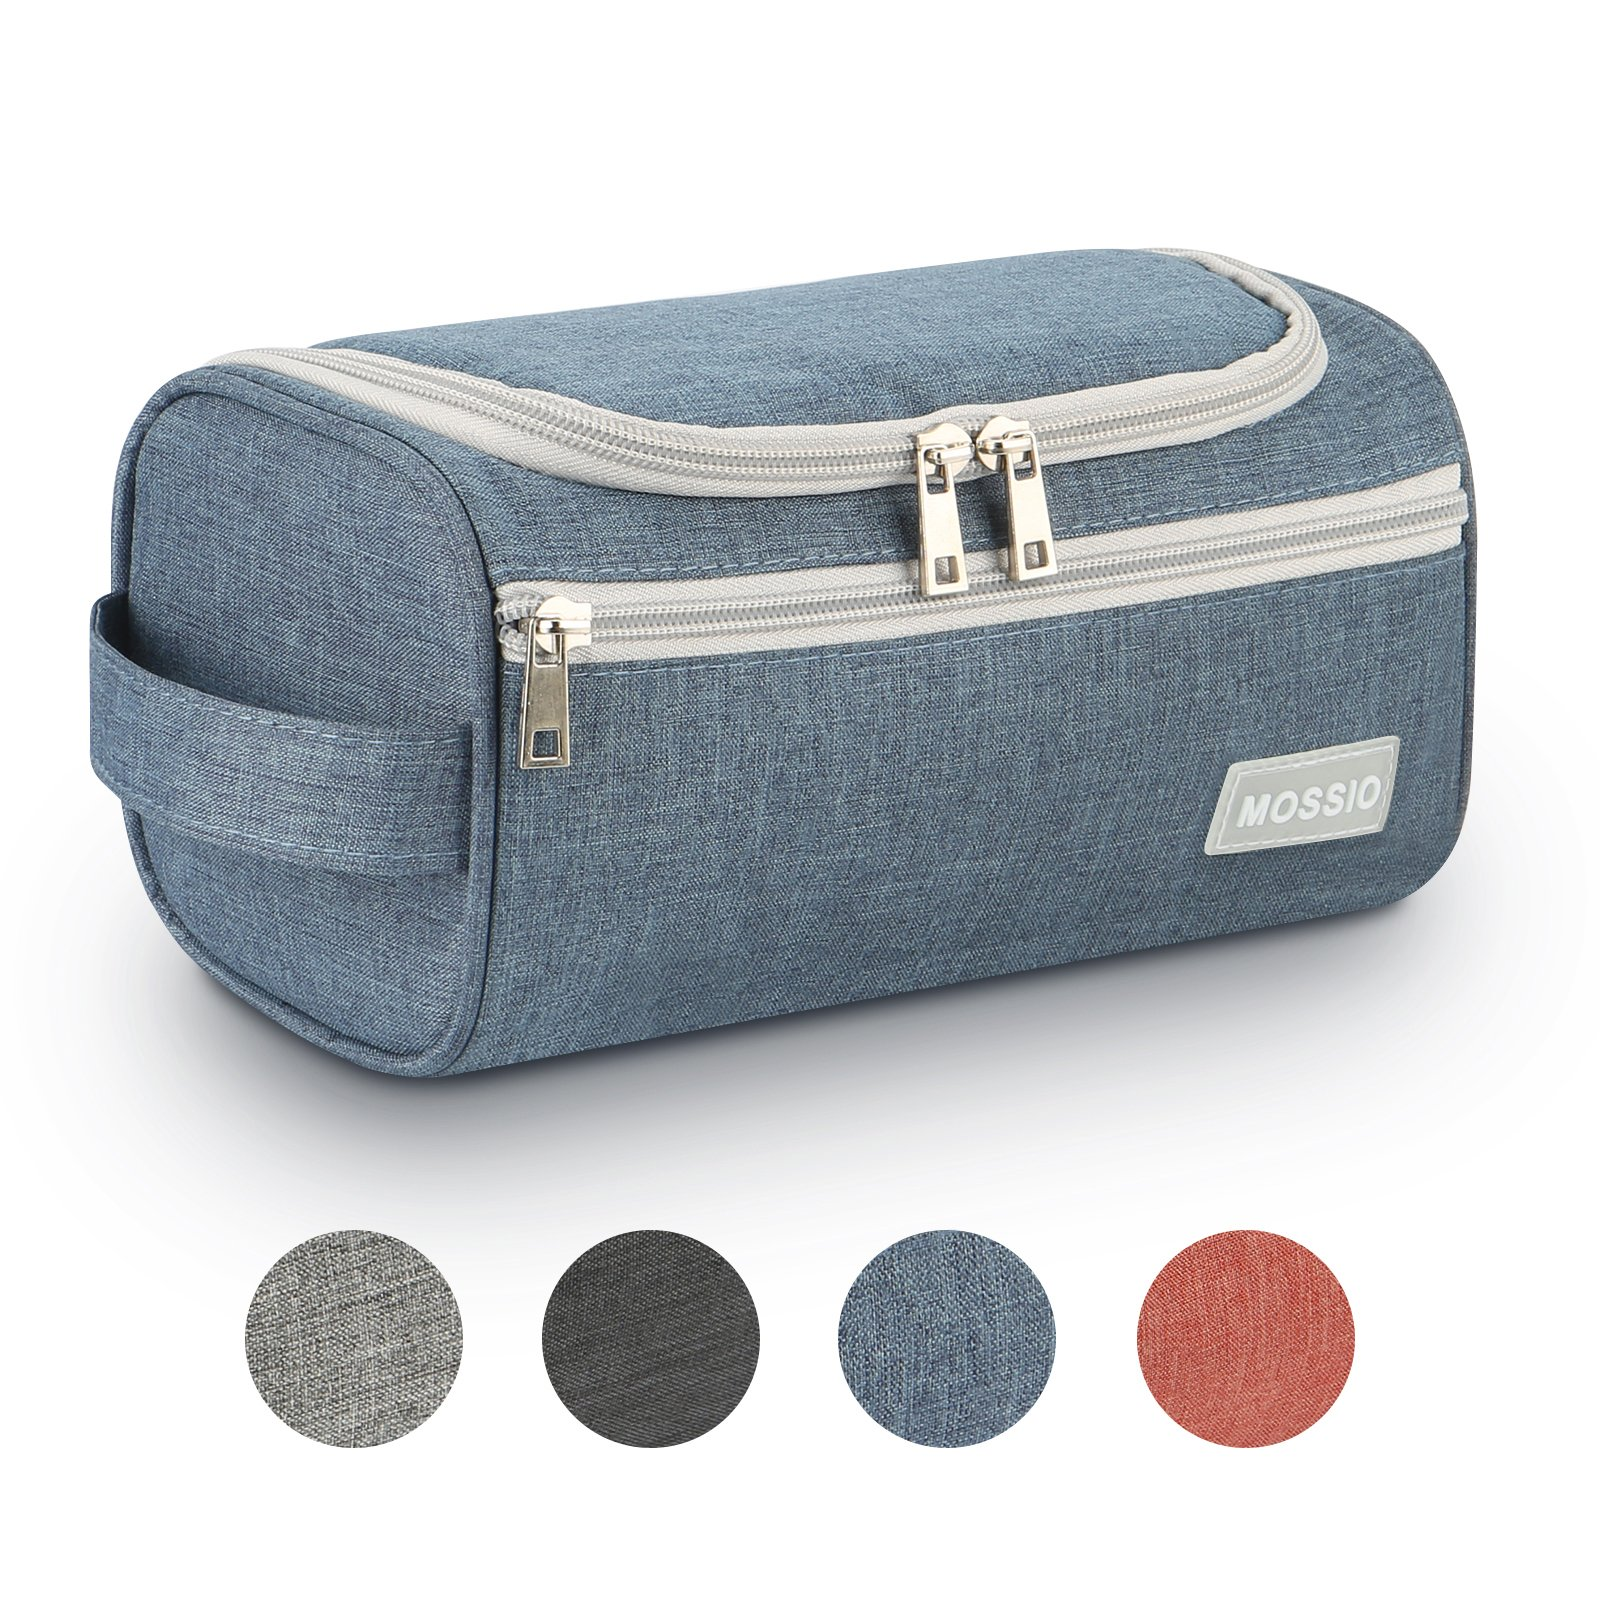 Toiletry Bag,Mossio Vintage Travel Luggage Organizer Storage Pouch Great Gift with Handle Blue